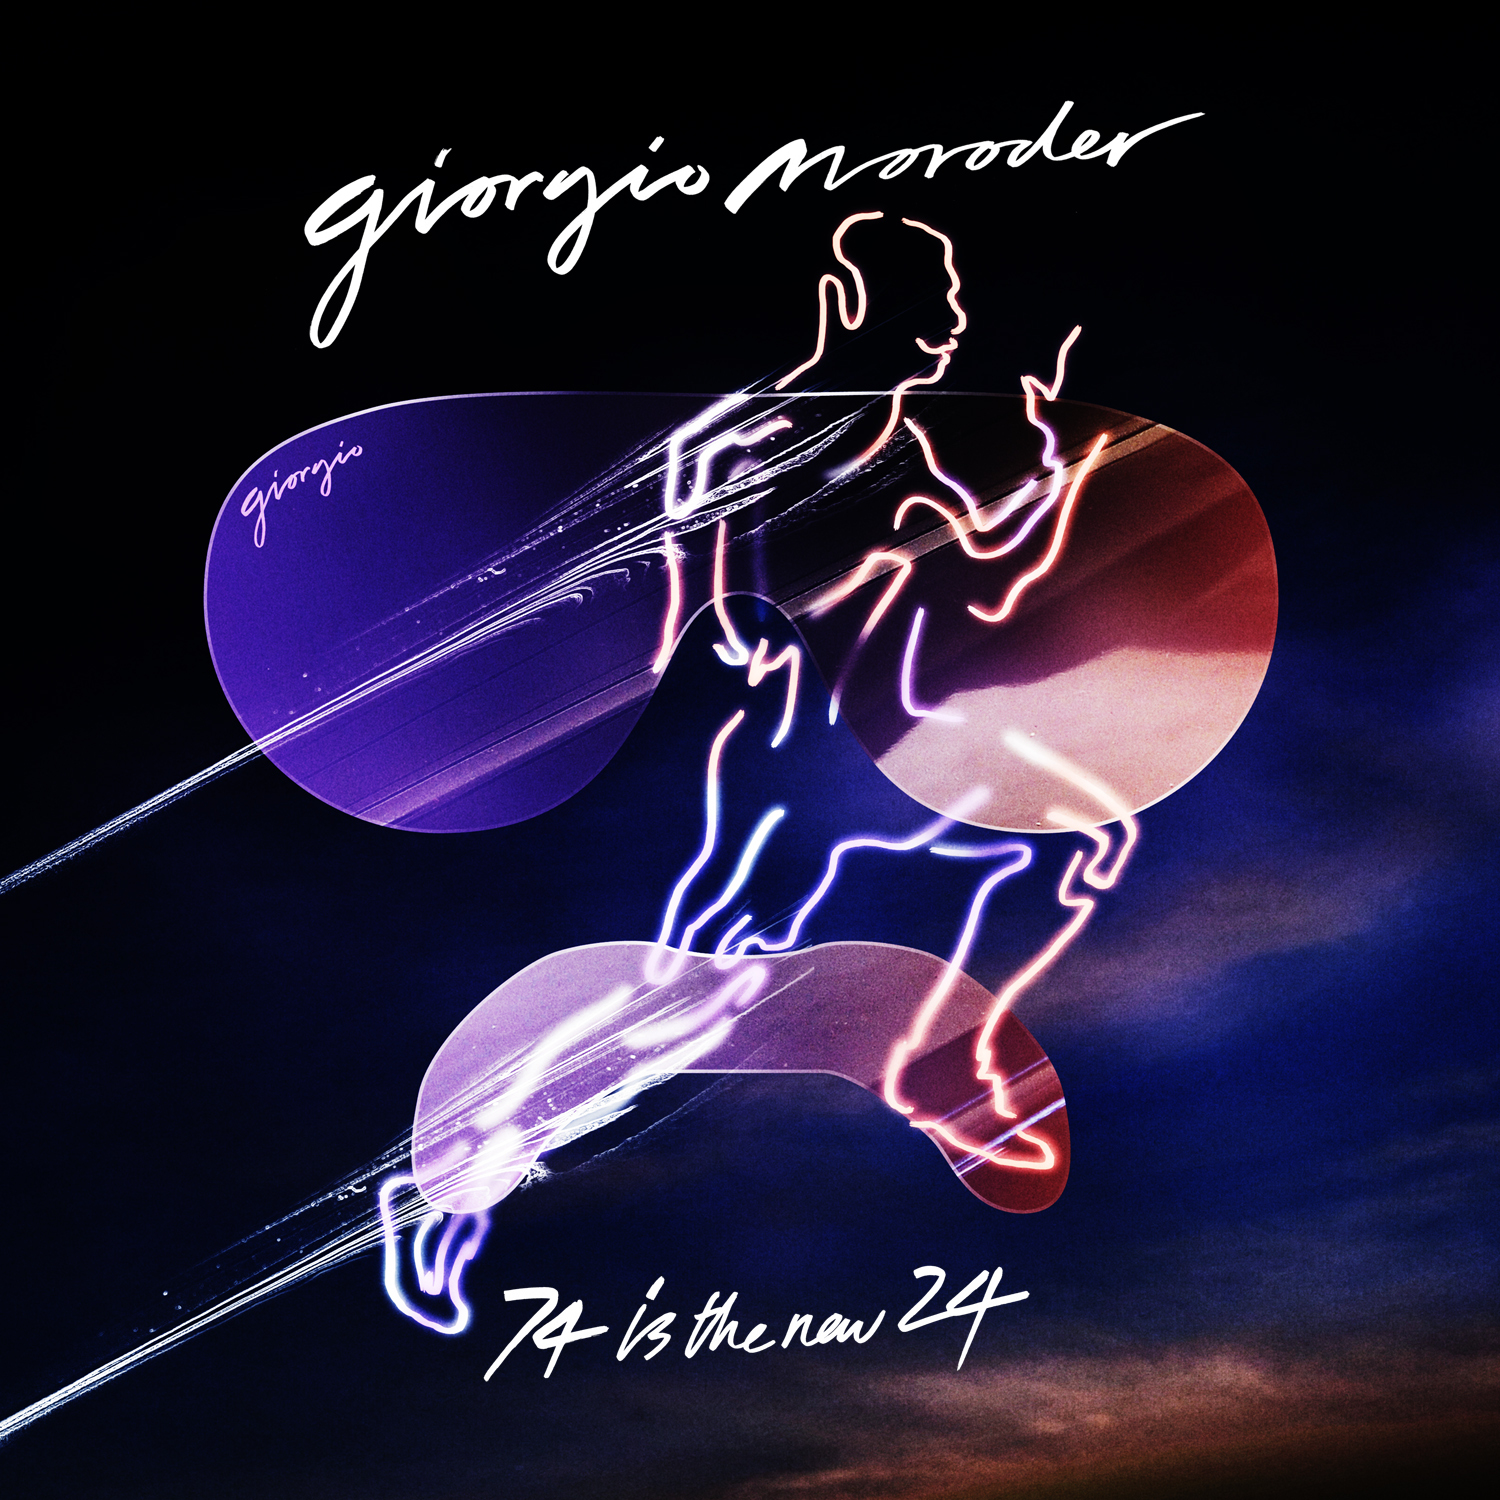 Patrick Patrikios Co-Produces New Giorgio Moroder Album